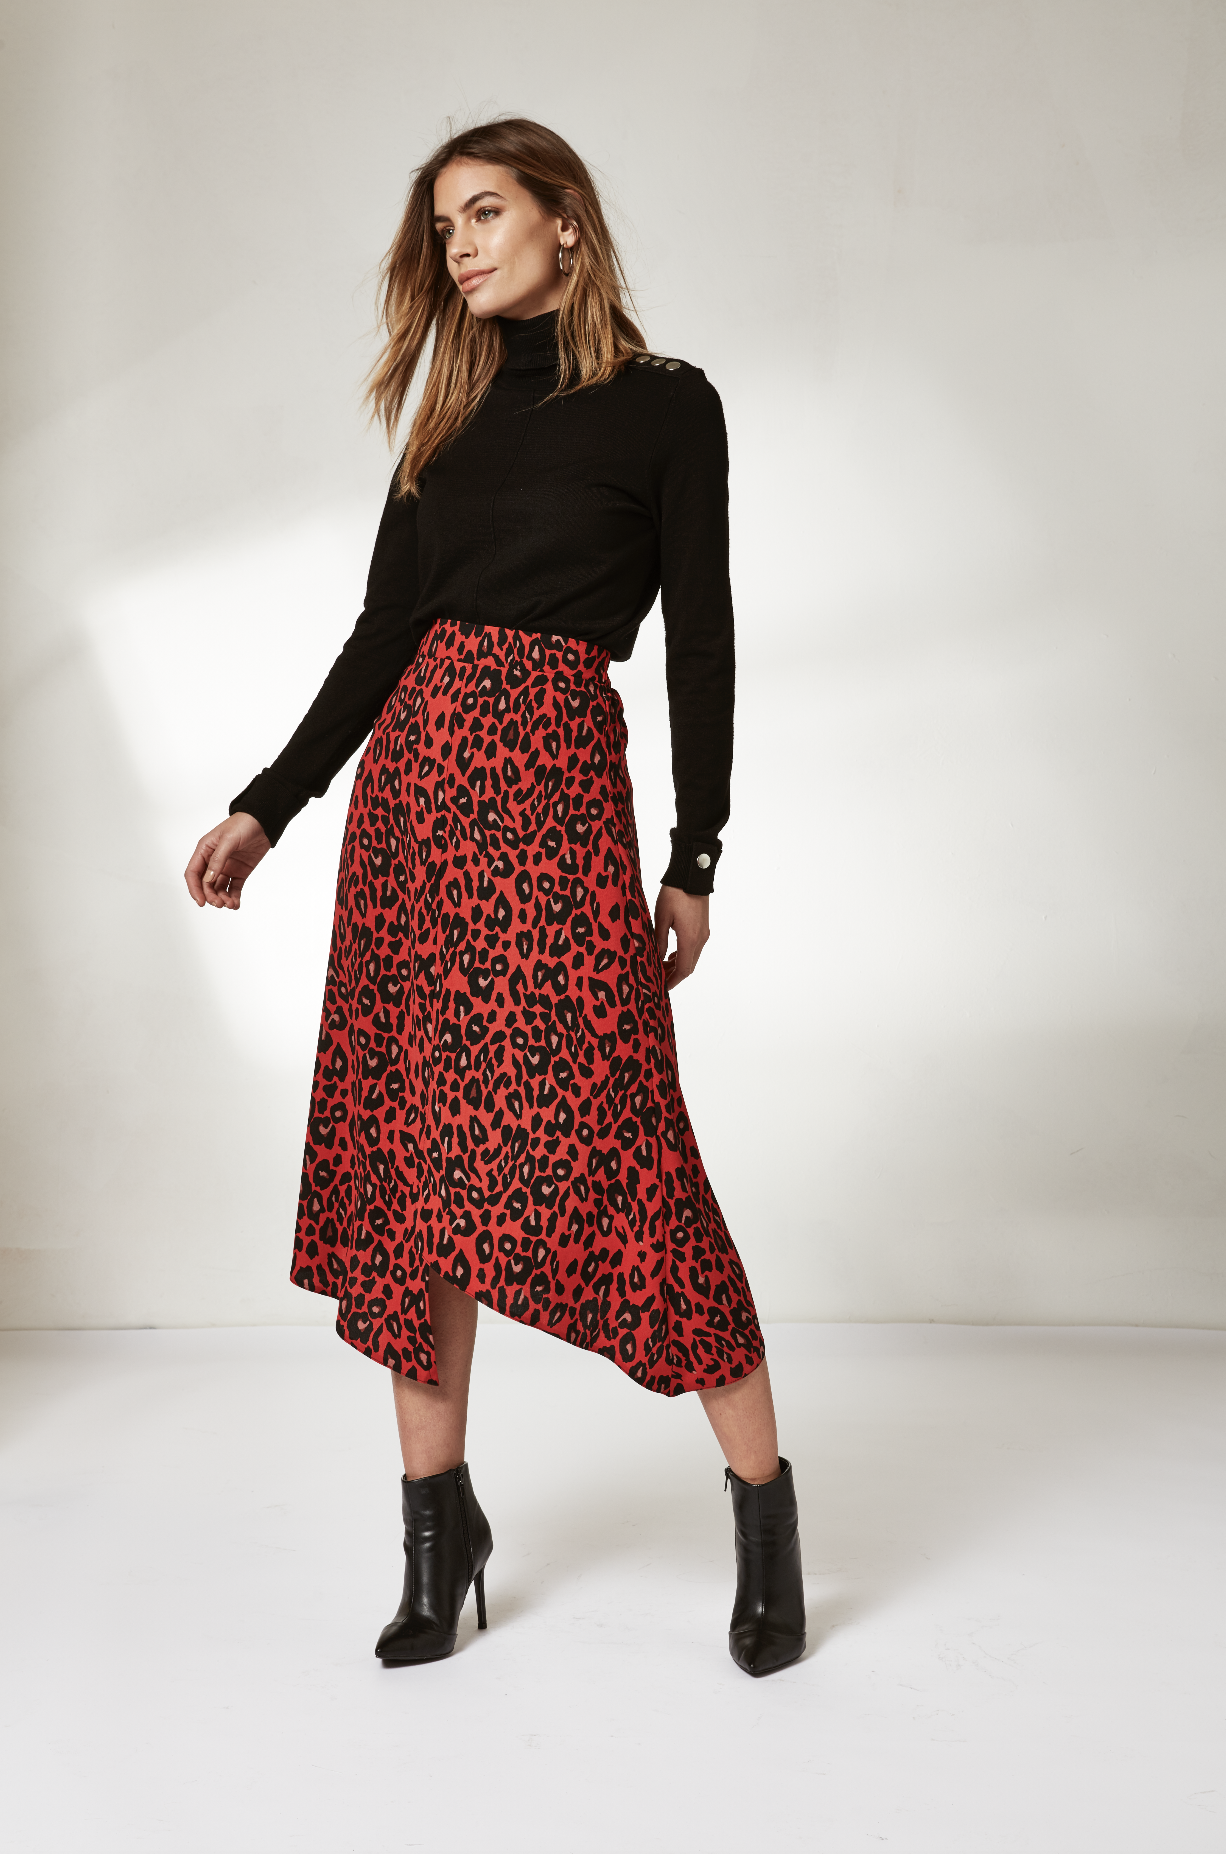 2088d8c32 A new year of style | Refresh your wardrobe for 2019 with the latest animal  print midi skirts | Wallis | Click to shop #WallisFashion #WallisLoves ...